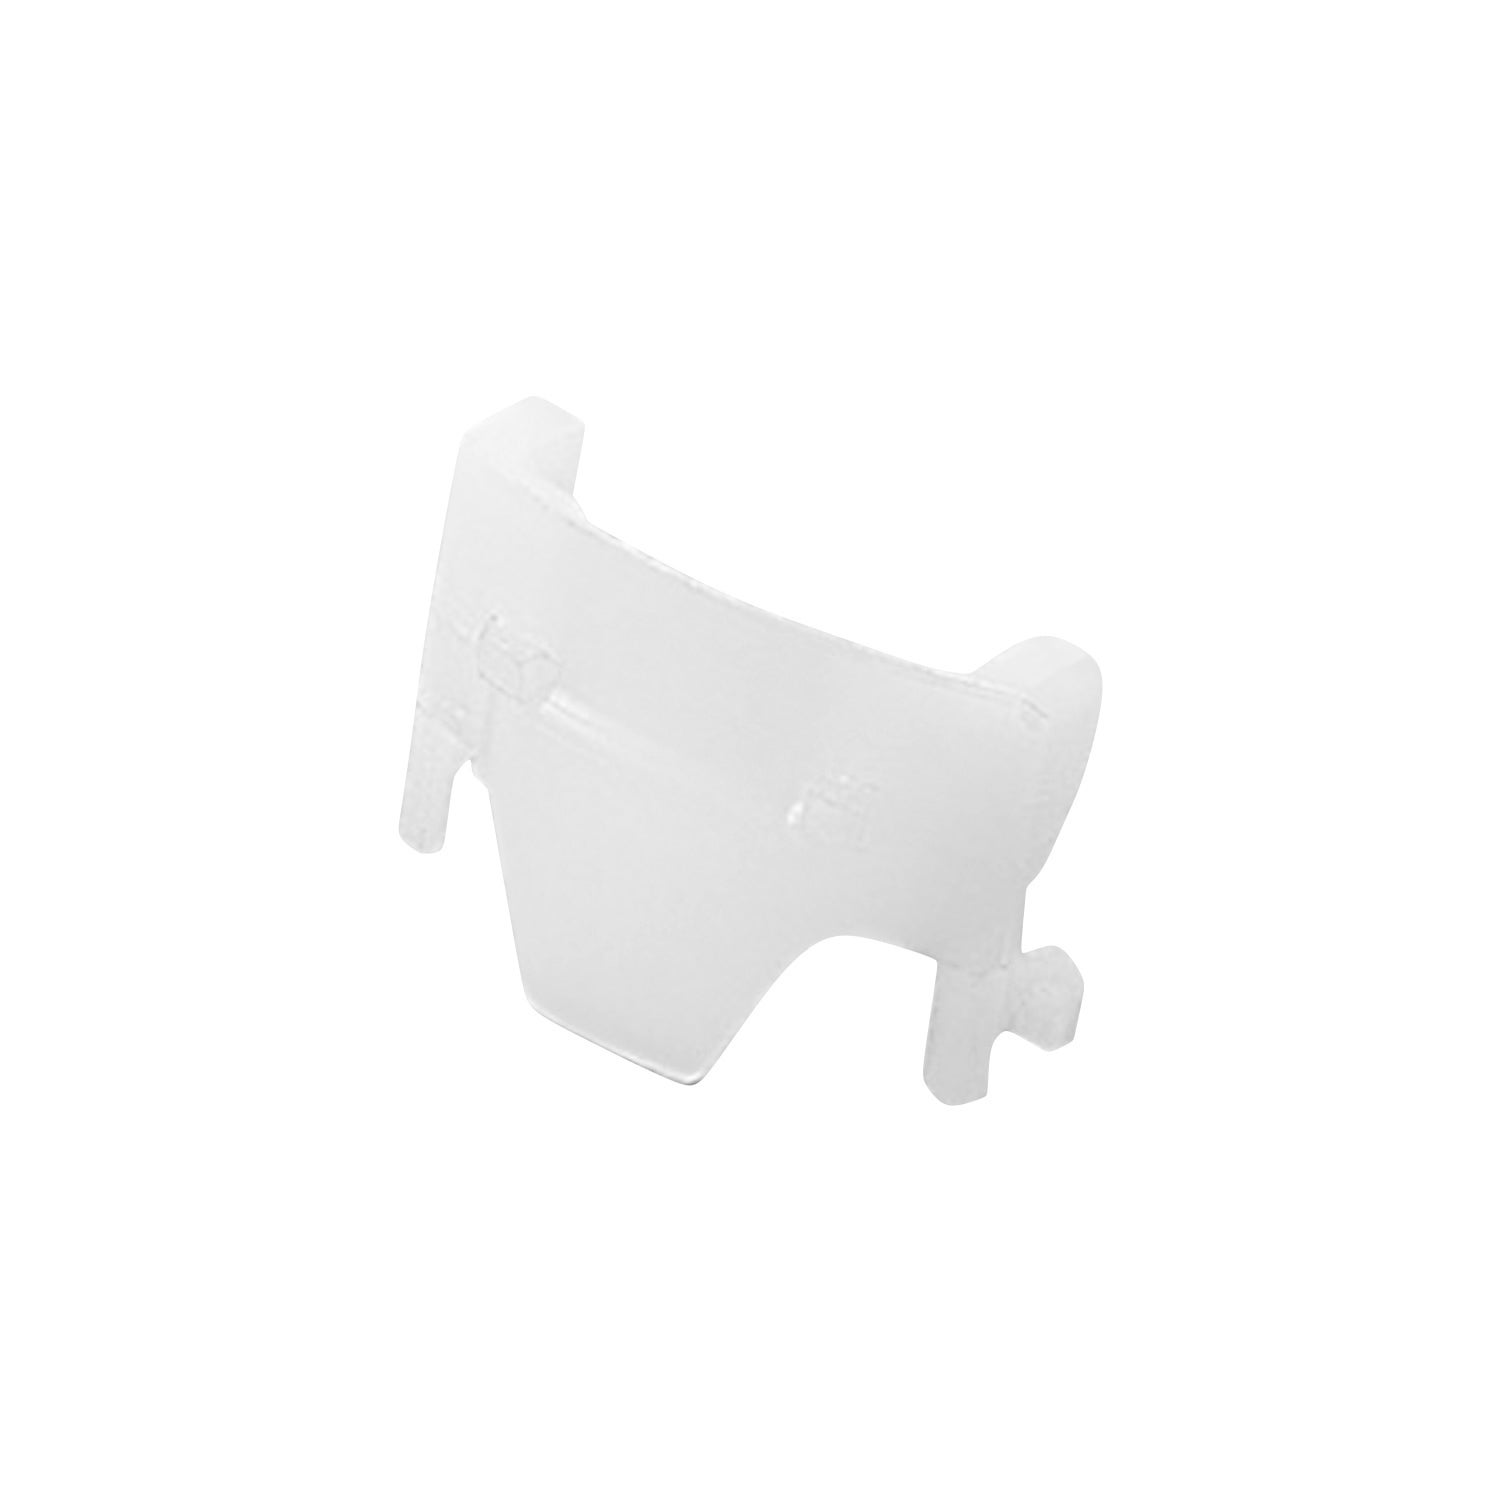 2 Pack Salice 86 Degree Angle Restriction Reduction Clip for Silentia Face Frame Hinges SUP337XG SUP337XG-2